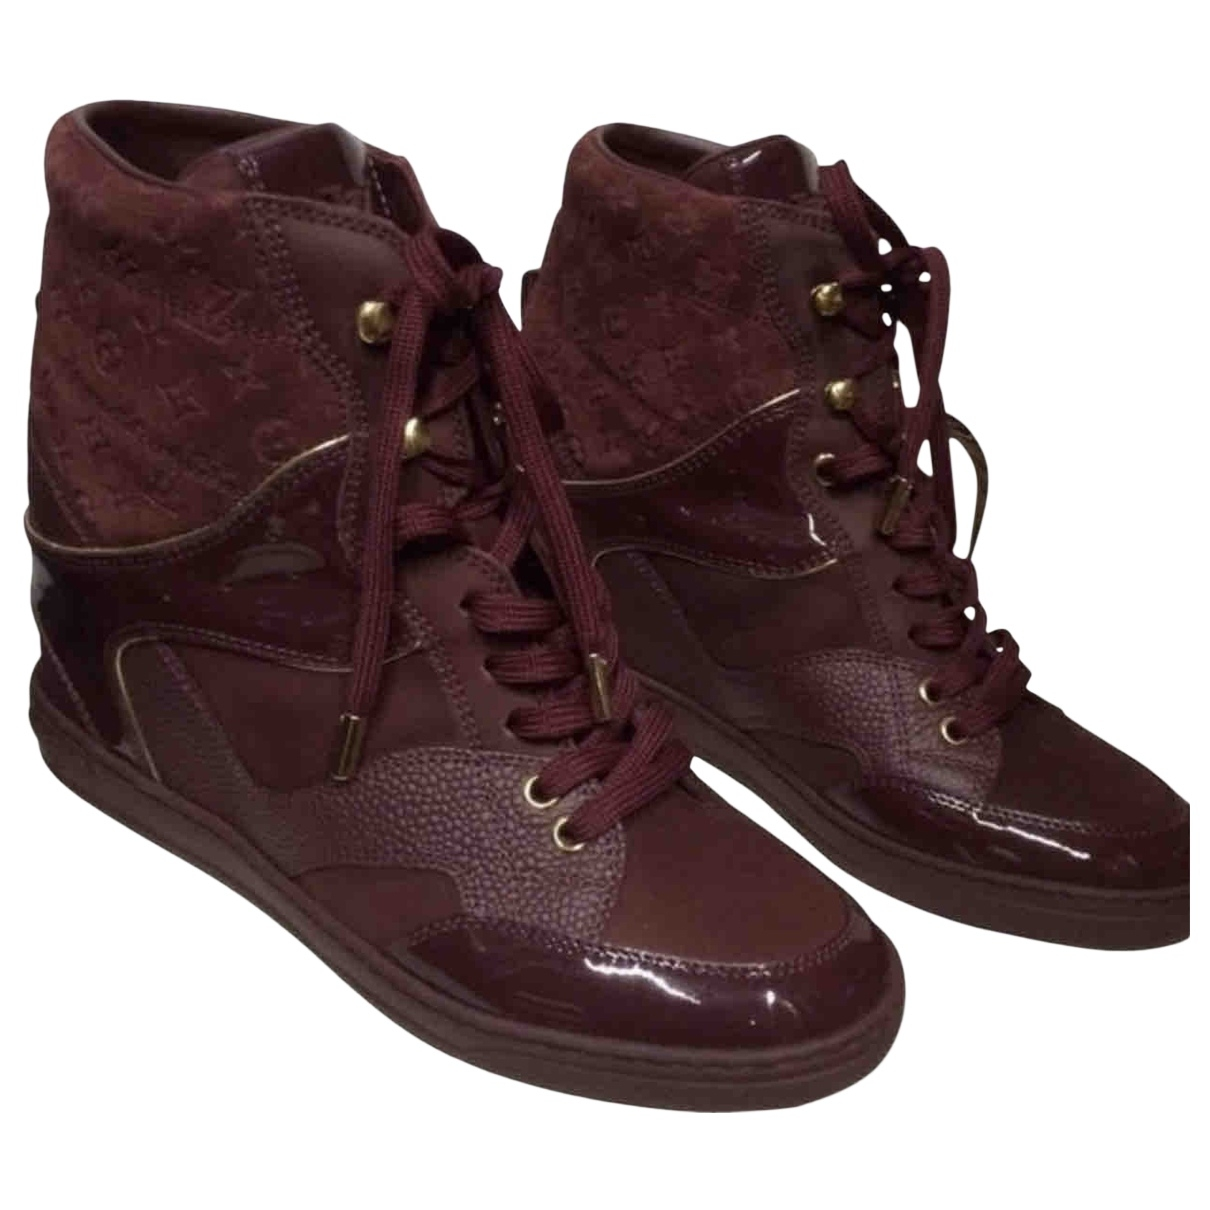 Louis Vuitton \N Burgundy Patent leather Trainers for Women 5.5 UK